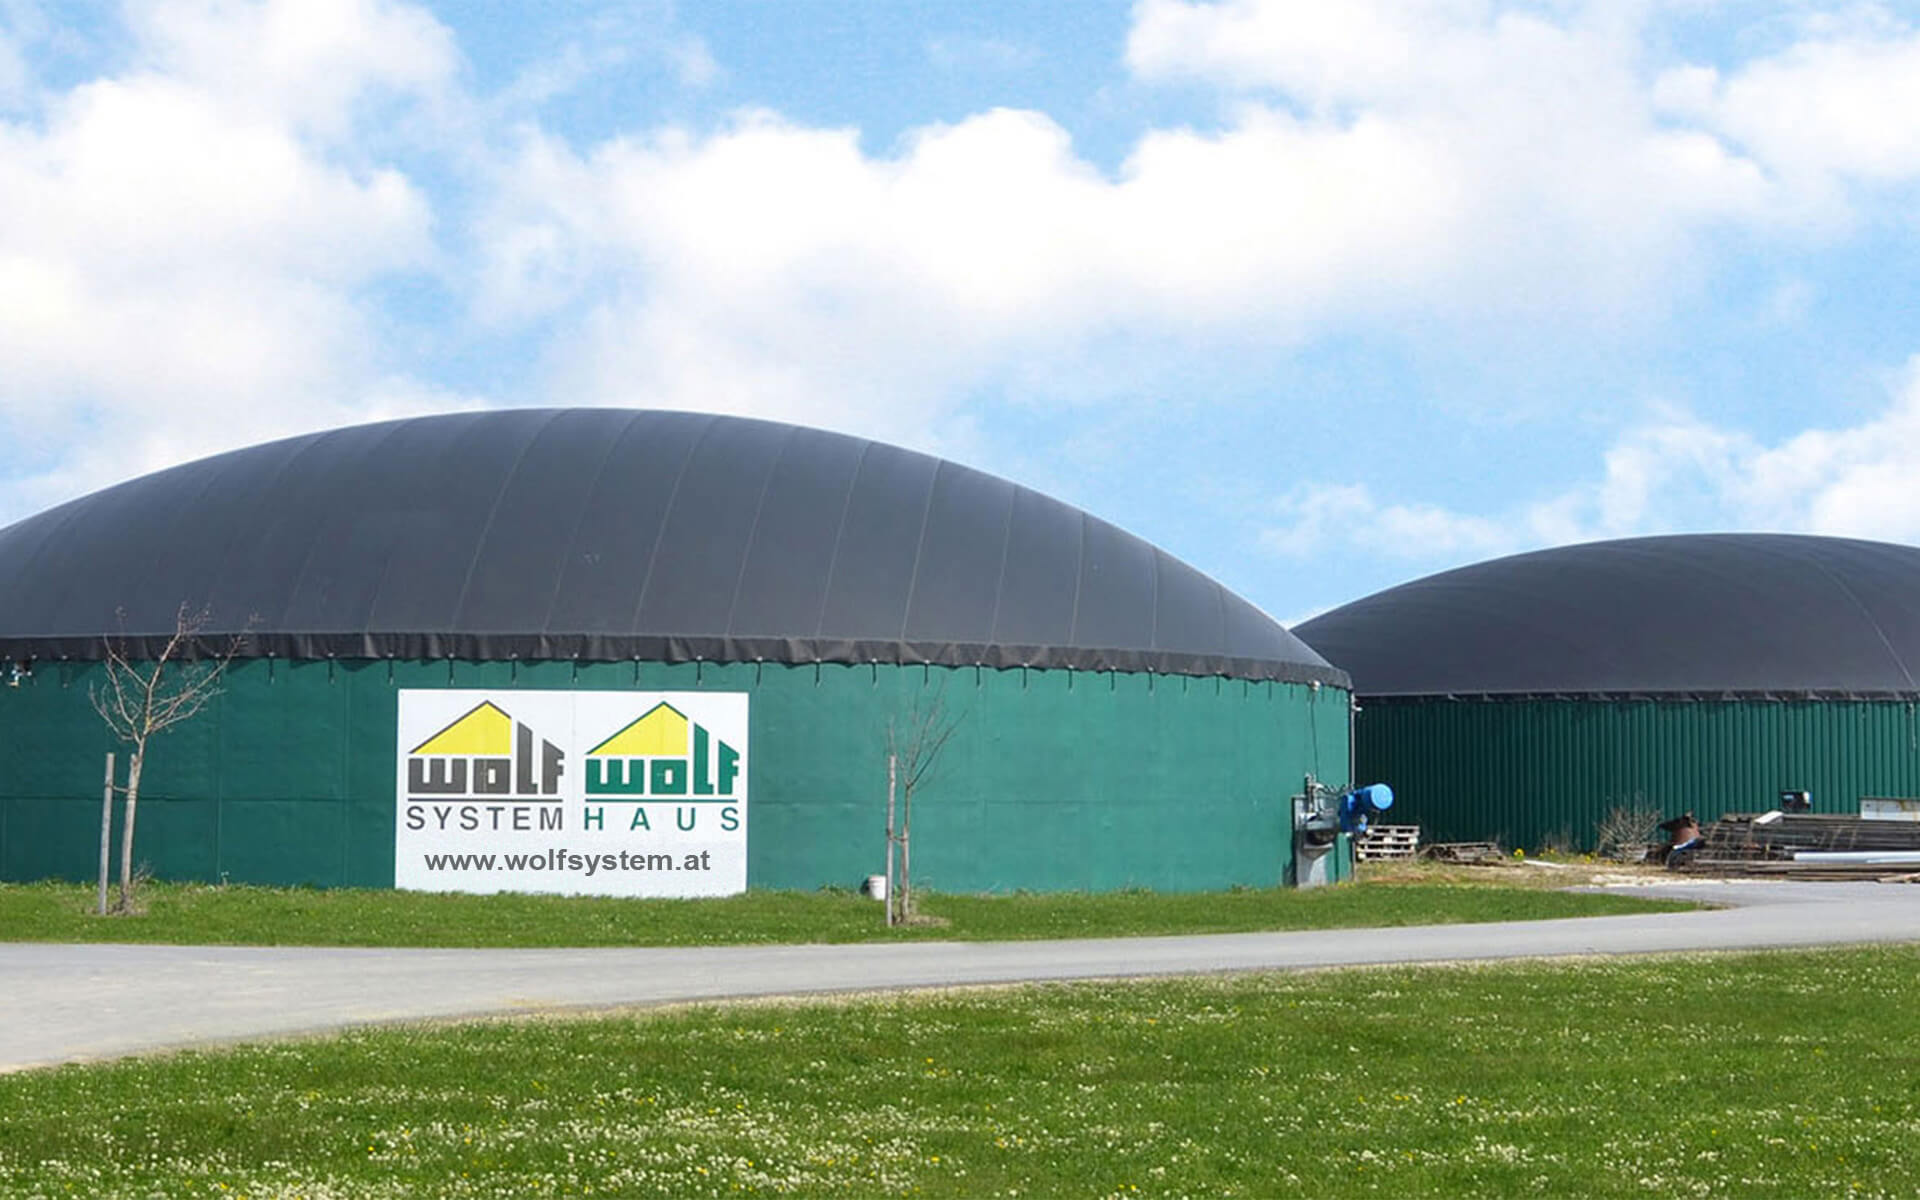 Biogas plants - Biogas, Energy, Electricity, WOLF System